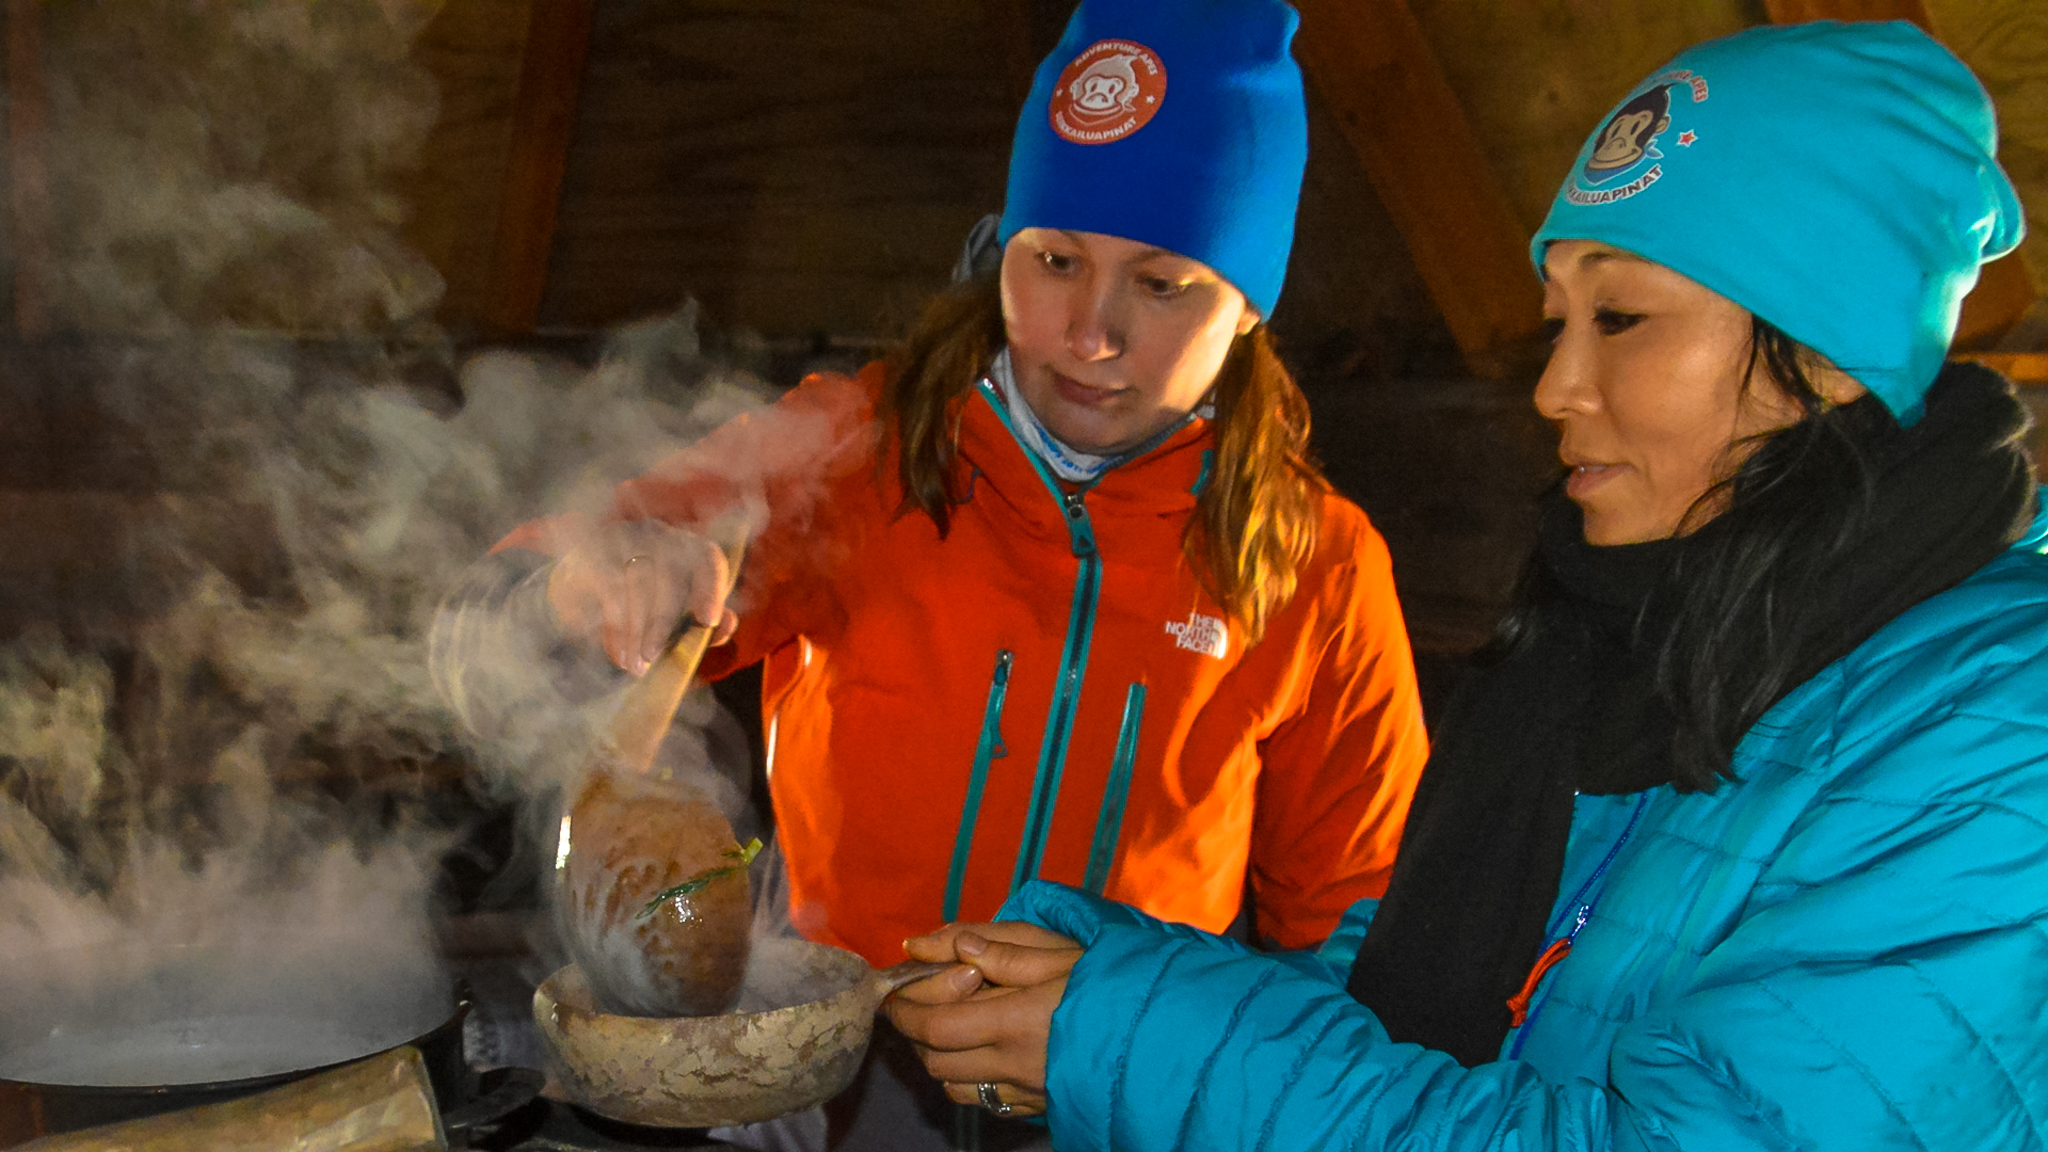 adventure_apes_kuusamo_outdoor_cooking_008.JPG